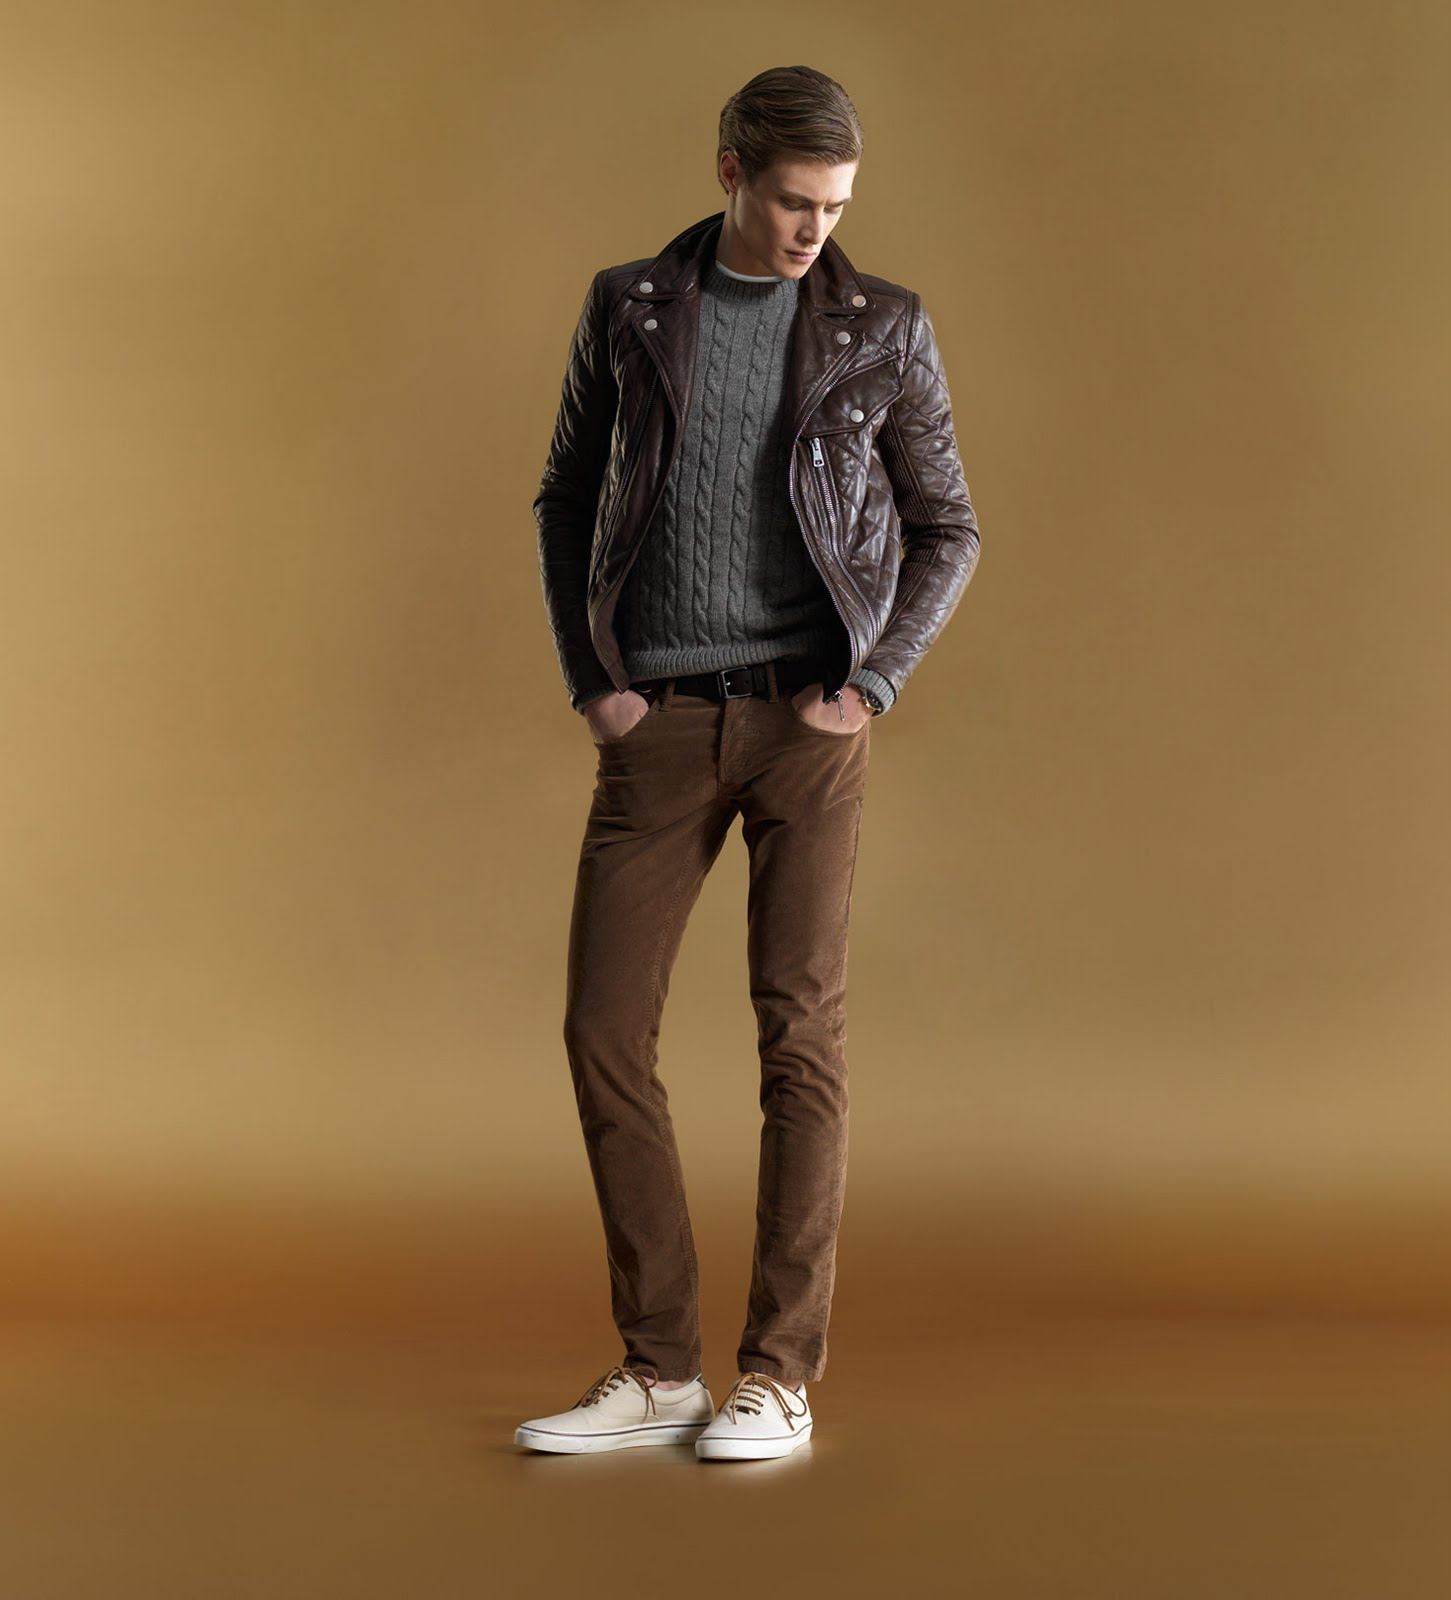 Brown Light pants men fashion pictures